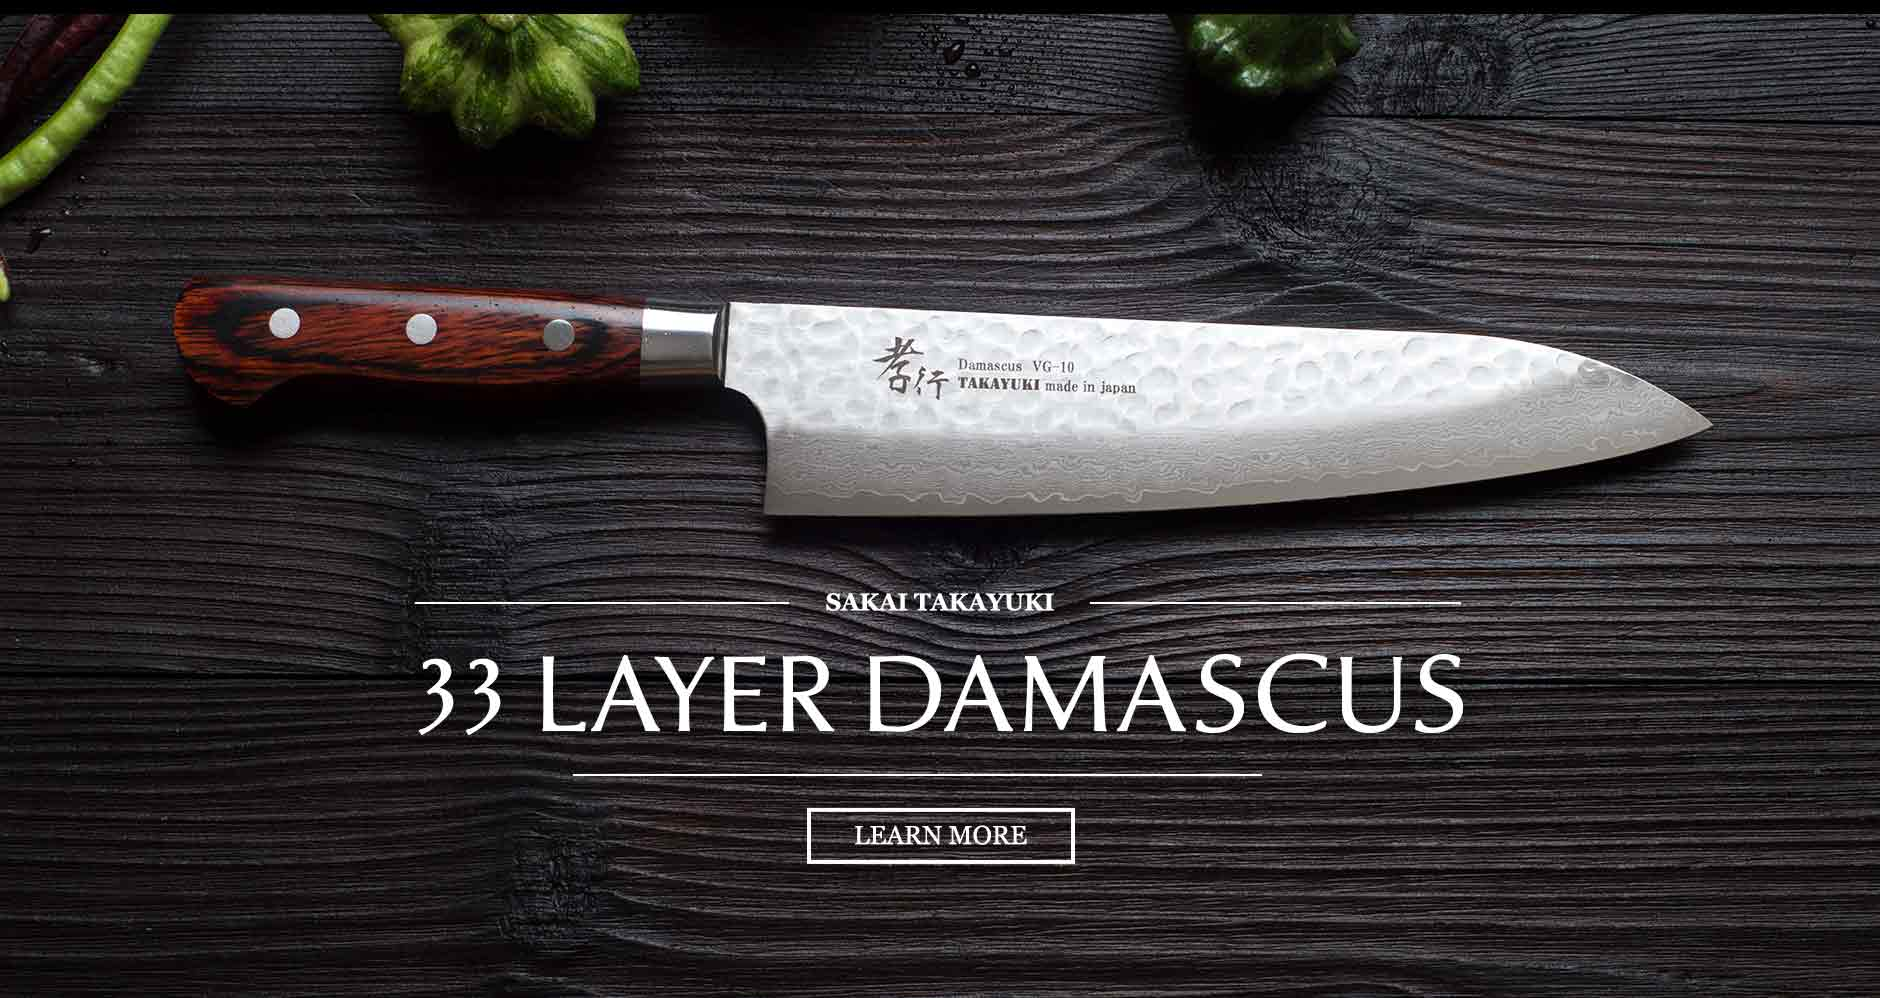 Free Shipping For U.S. And Canada Orders Over $100 / Worldwide Shipping For  $7 Flat Rate / Fore More Information On Our Japanese Chef Knives,  Kitchenware Or ...